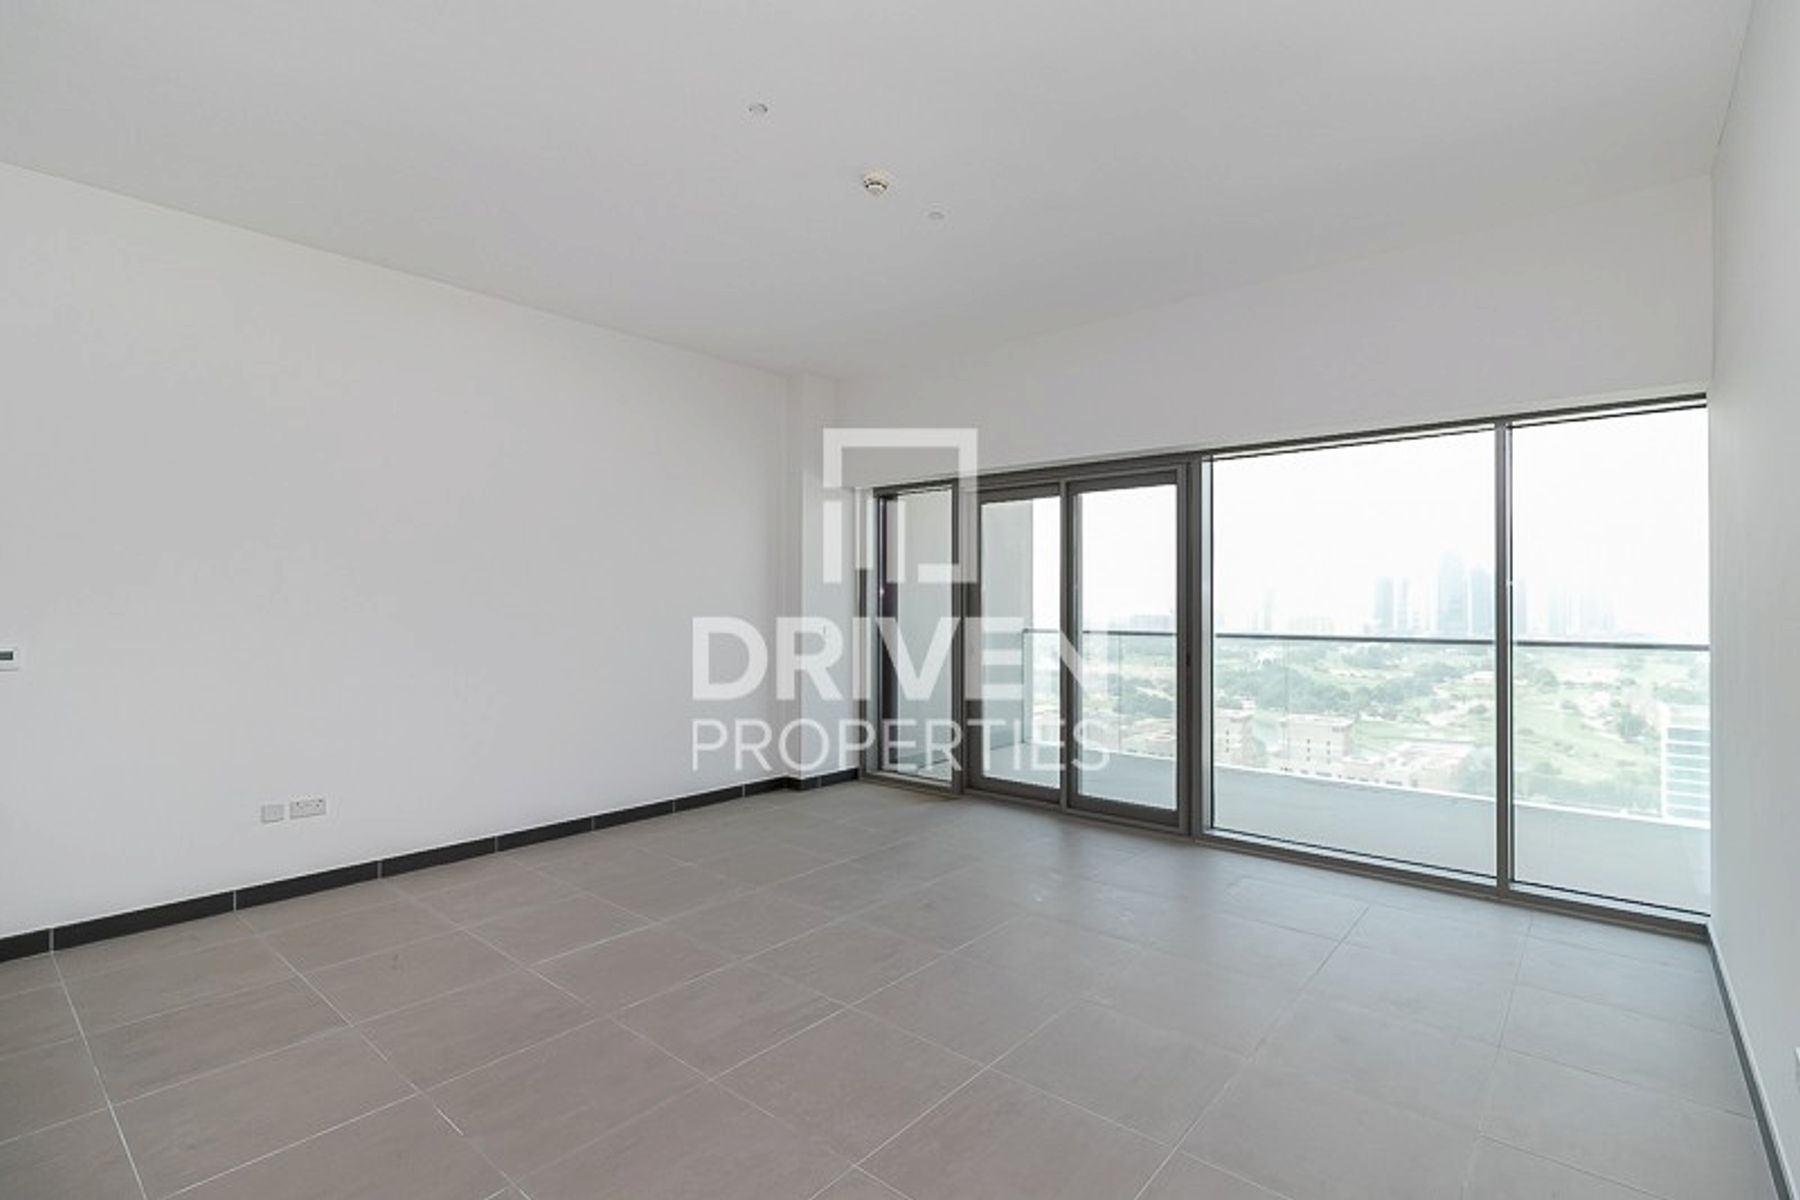 Higher Floor 2 Bedroom Unit With Golf View